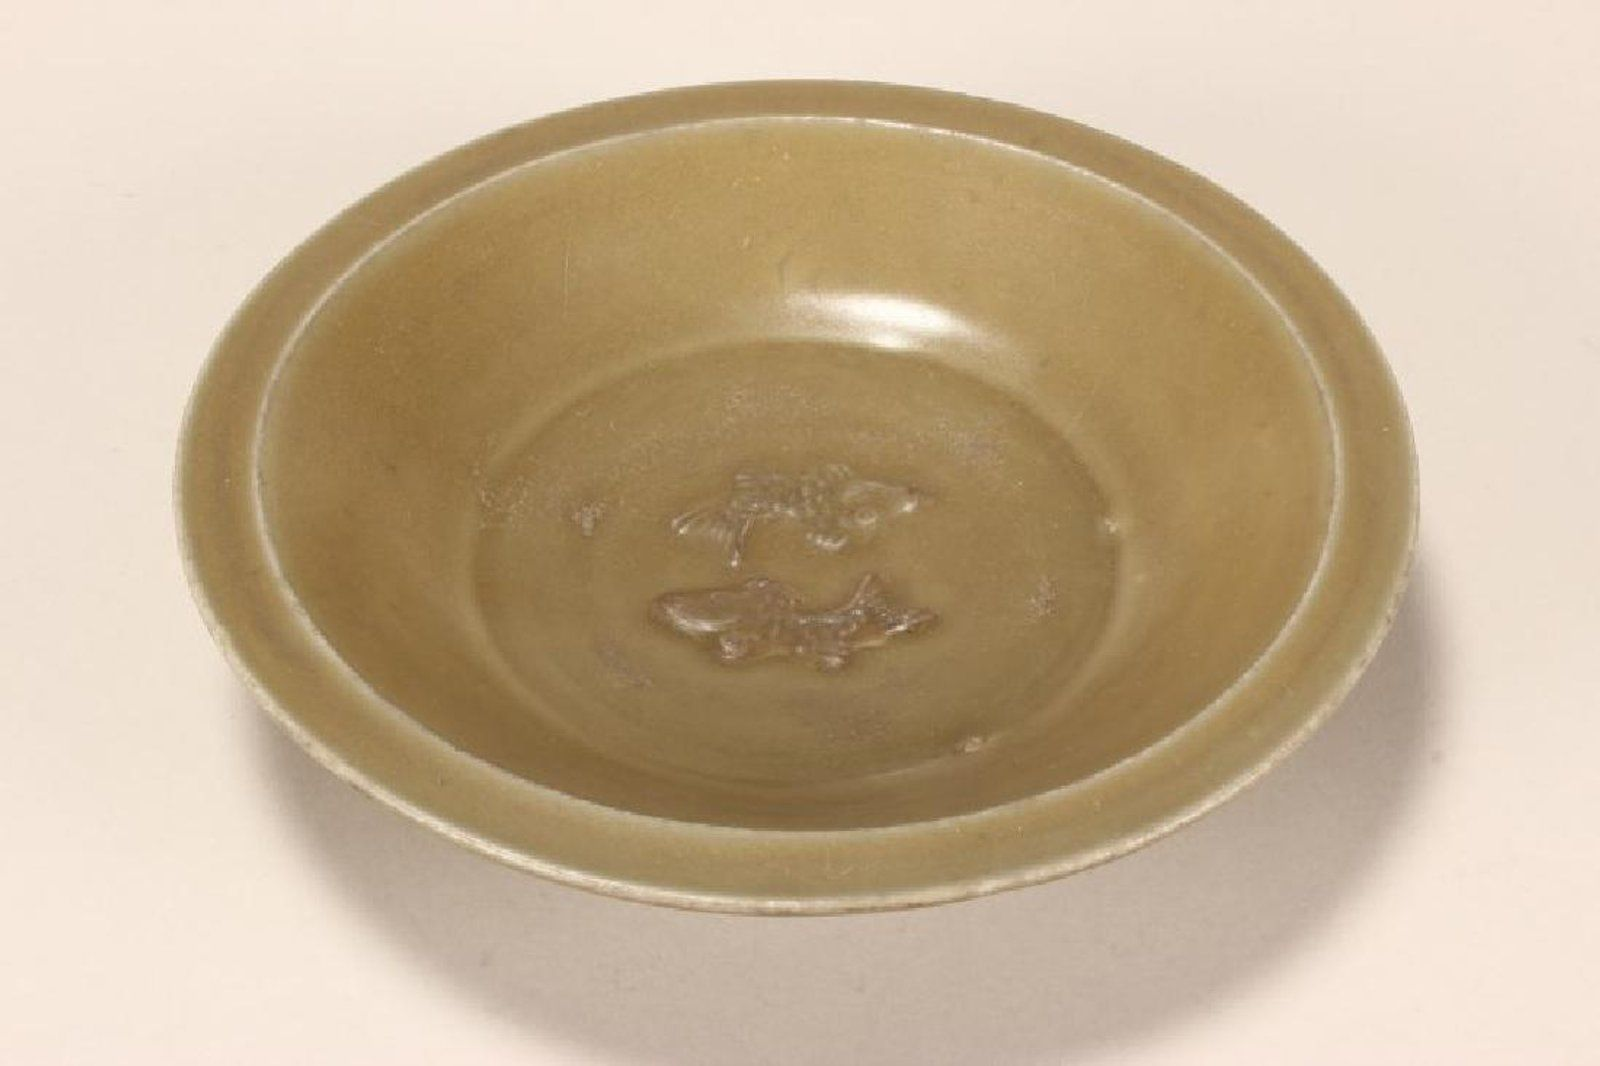 Early Chinese Ming Dynasty Celadon Bowl With Spreading Lip In A Dark Green Glaze Set With Raised Double Fish With Images Celadon Ming Dynasty